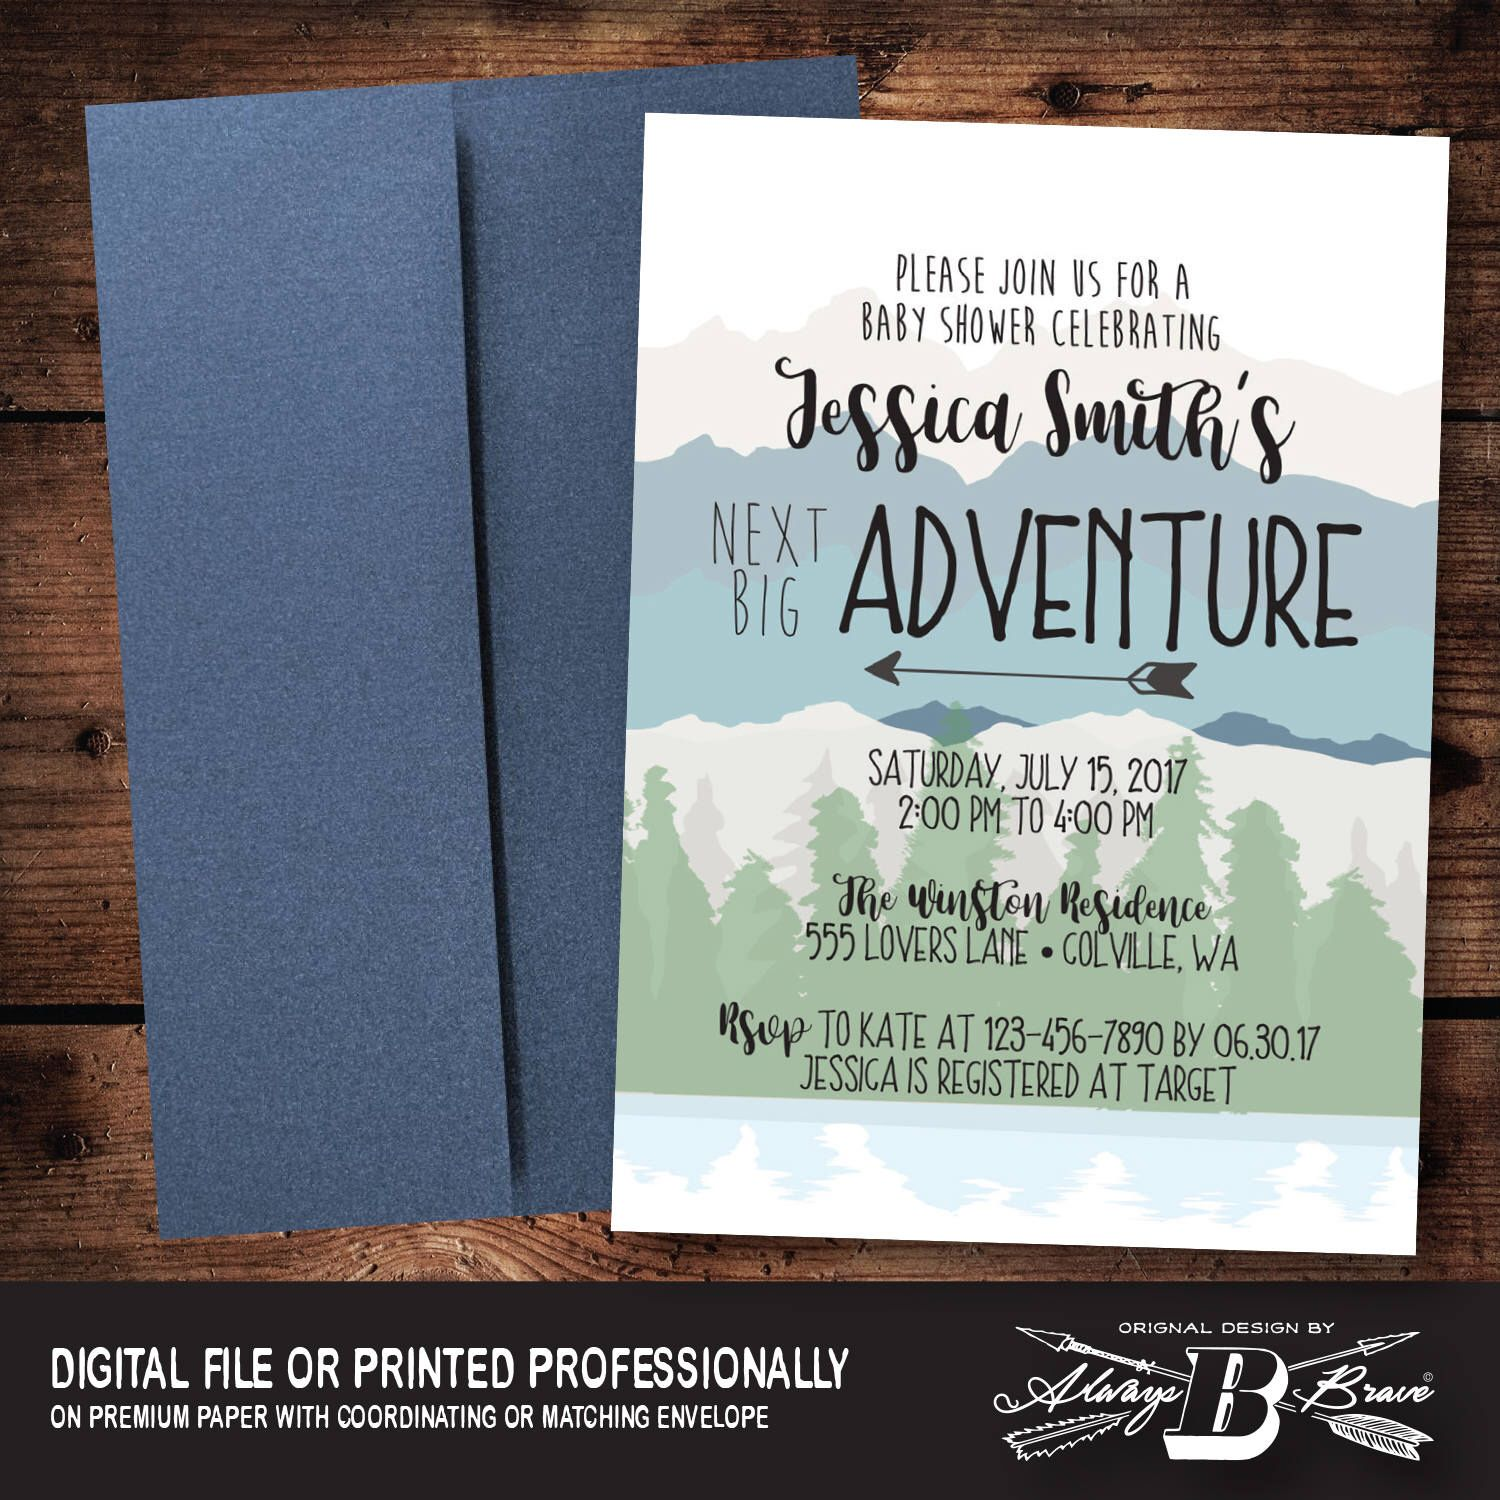 jungle theme baby shower invitation sayings%0A Rustic Mountain Baby Shower   Adventure Begins Invitation   Woodsy Outdoor  Invitation   Woodland Invitation